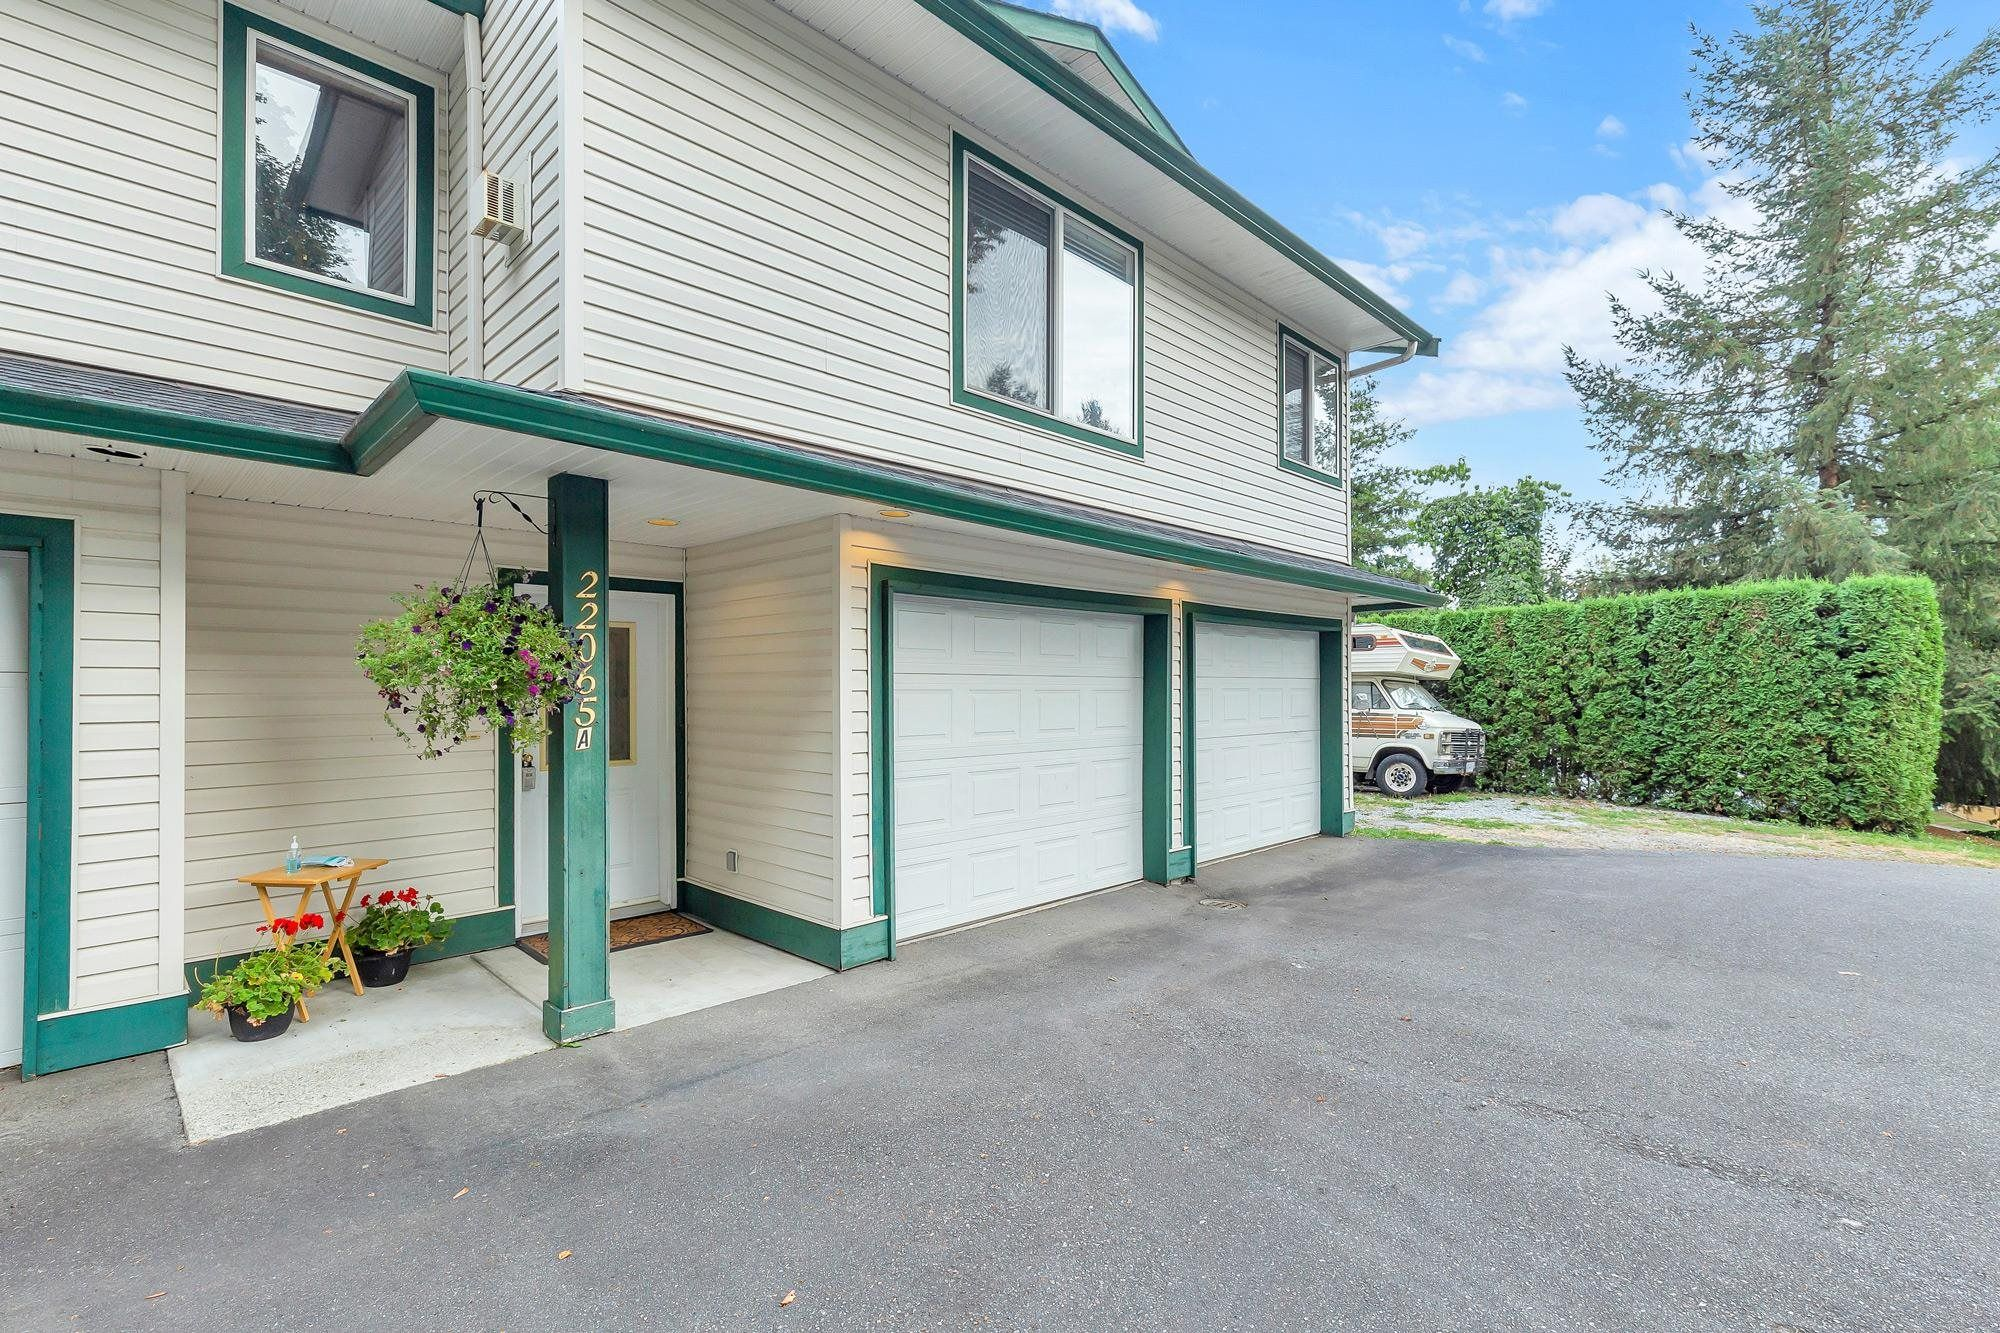 Main Photo: A 22065 RIVER Road in Maple Ridge: West Central 1/2 Duplex for sale : MLS®# R2615551